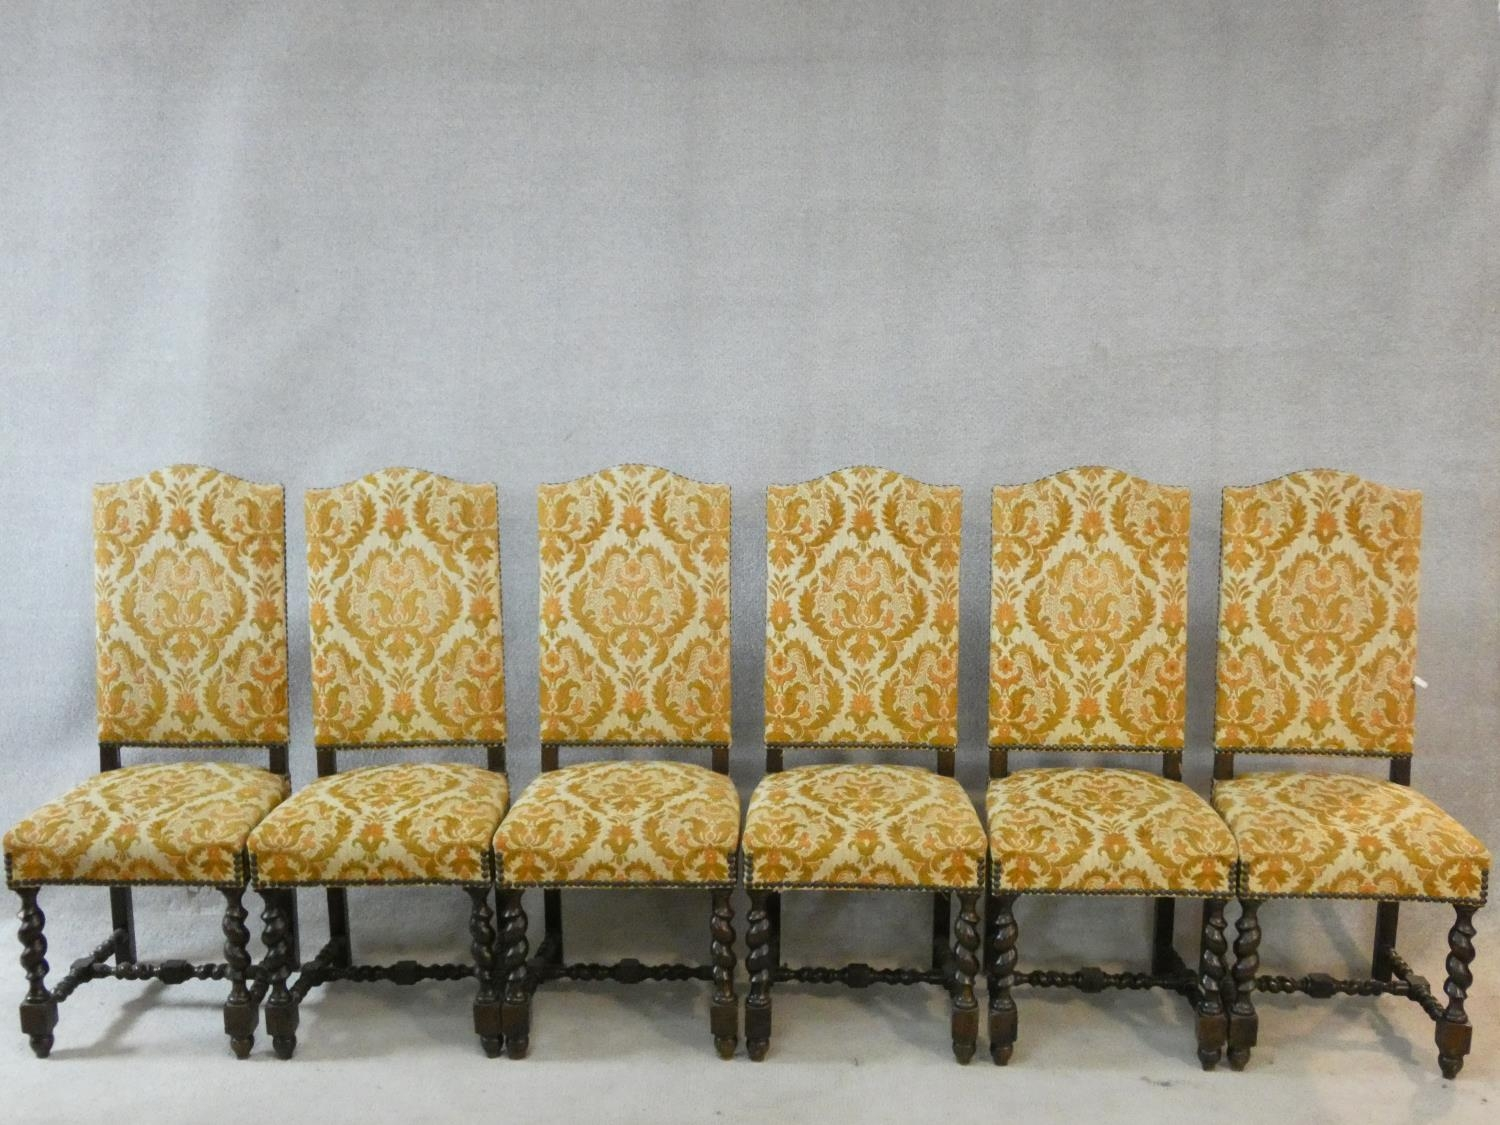 A set of six Jacobean style oak framed high back dining chairs in gold cut floral upholstery on